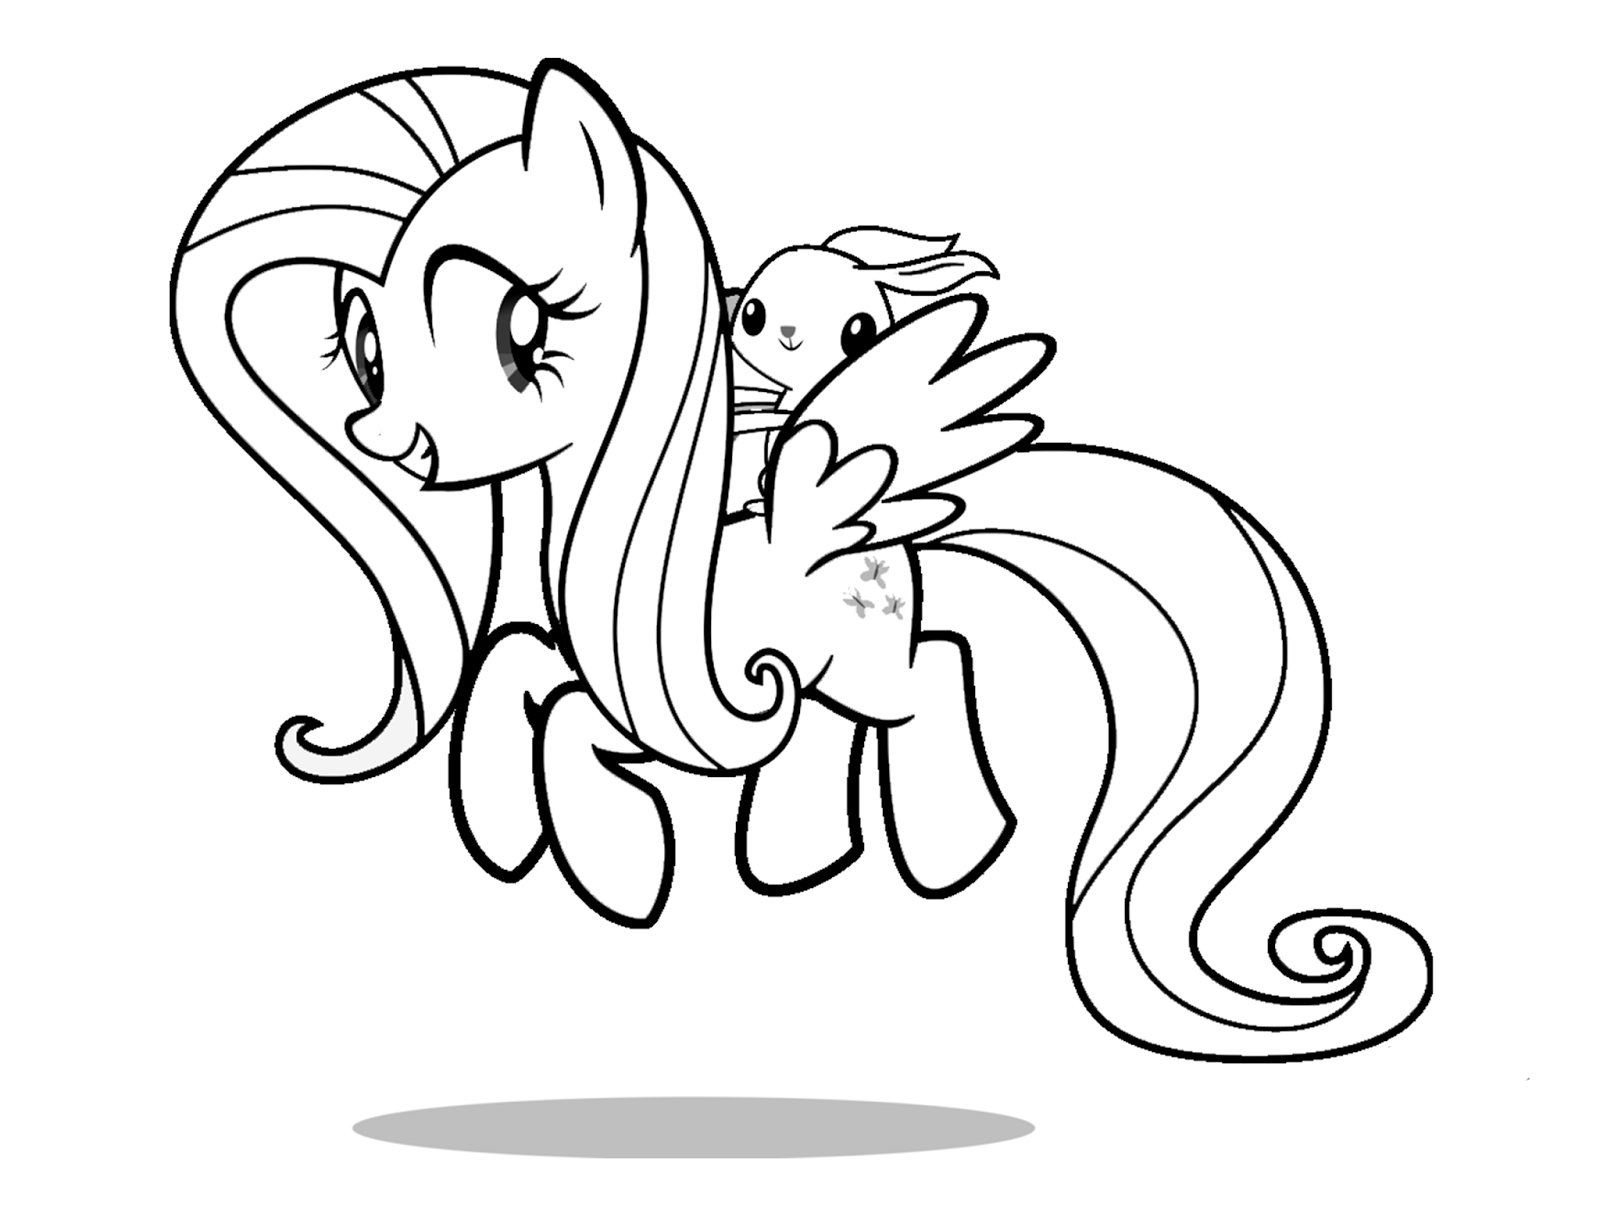 coloring pages of fluttershy fluttershy coloring pages best coloring pages for kids coloring of fluttershy pages